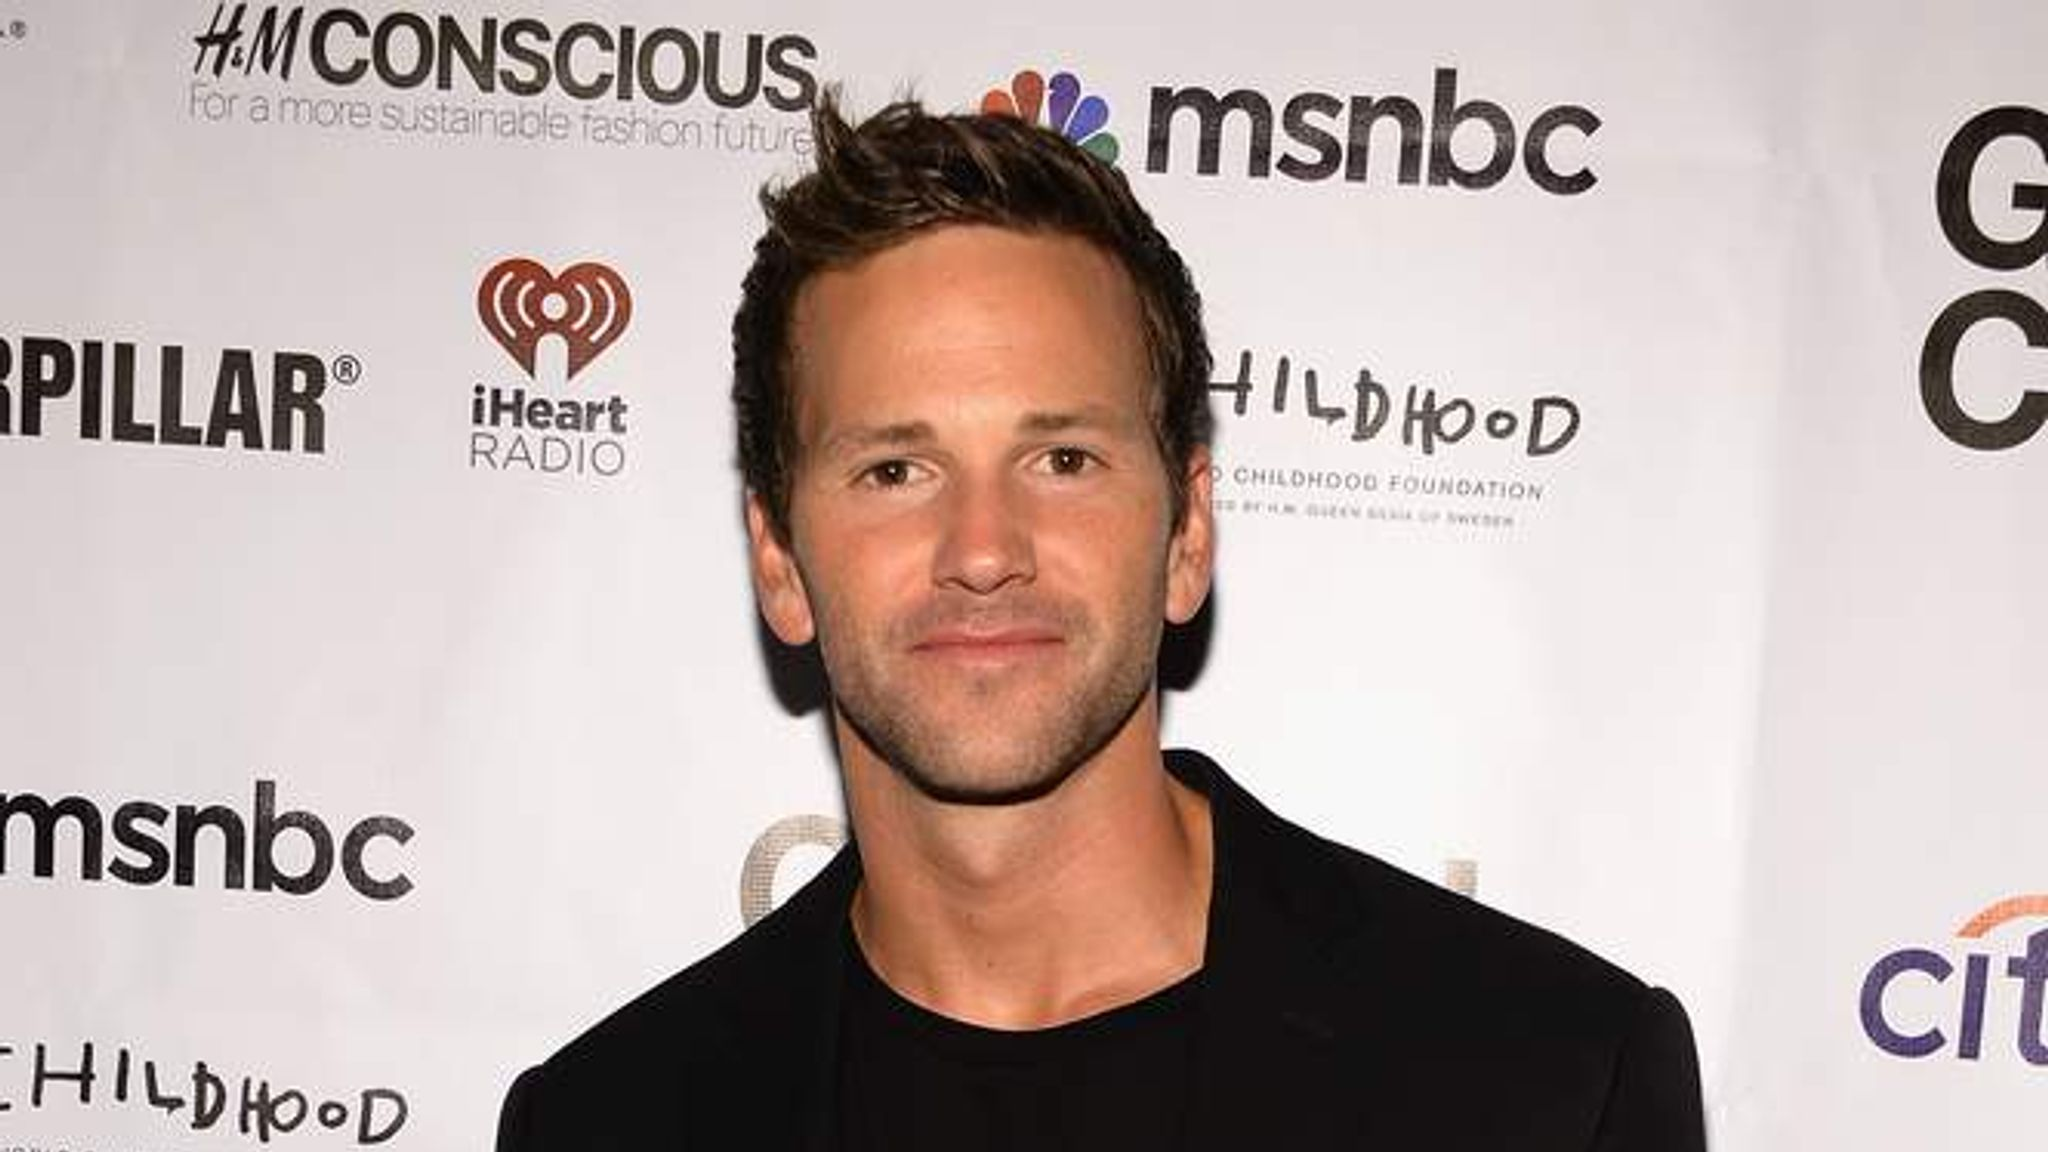 The Supreme Court has turned down a request from former Rep Aaron Schock to forestall the criminal trial hes facing on corruption charges although one